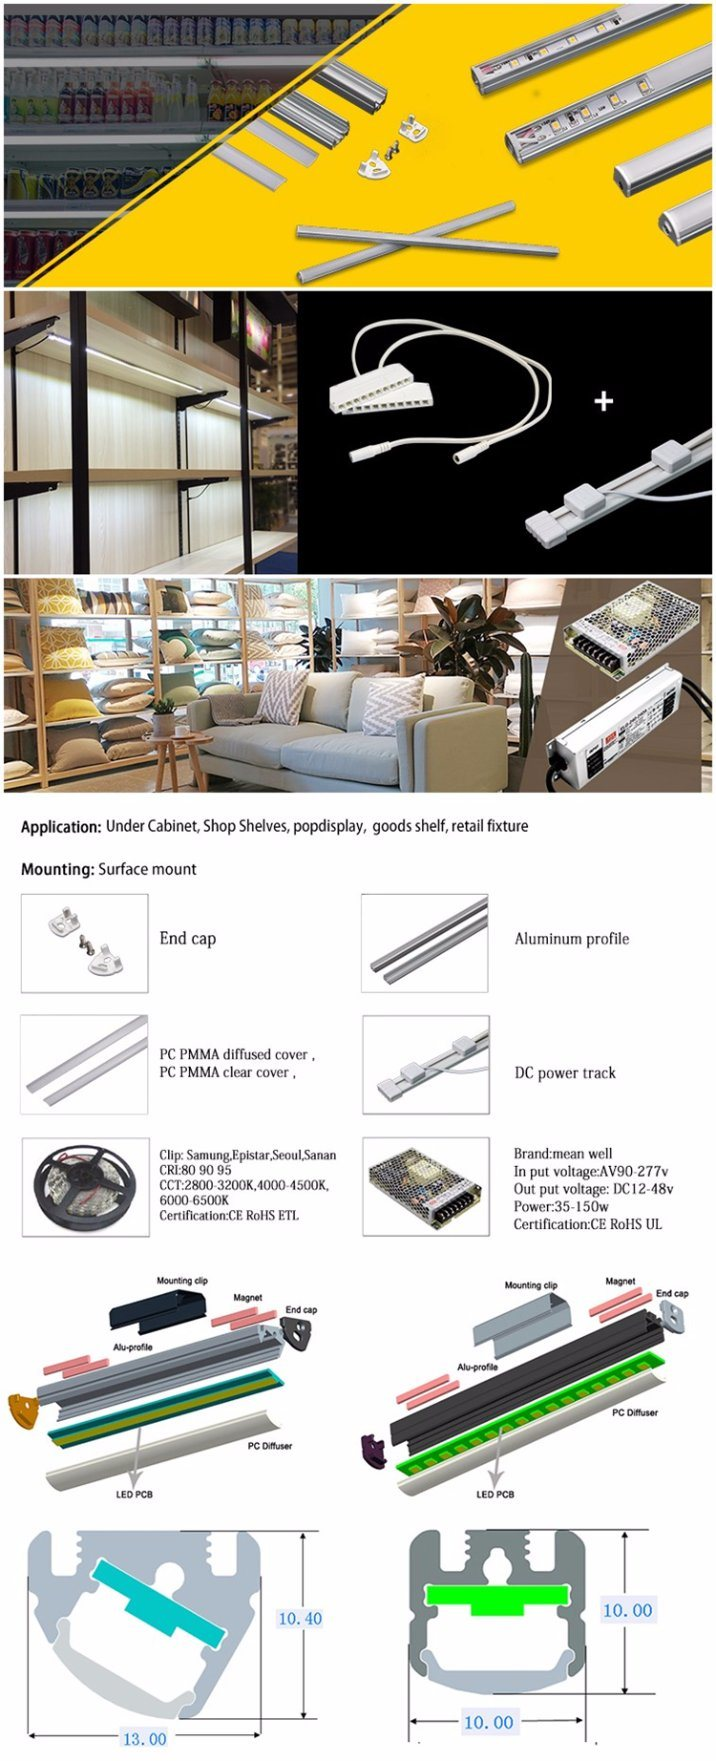 Wholesale LED Light Bar, LED Linear Light for Shop Shelves, Pop Display Retail Fixture